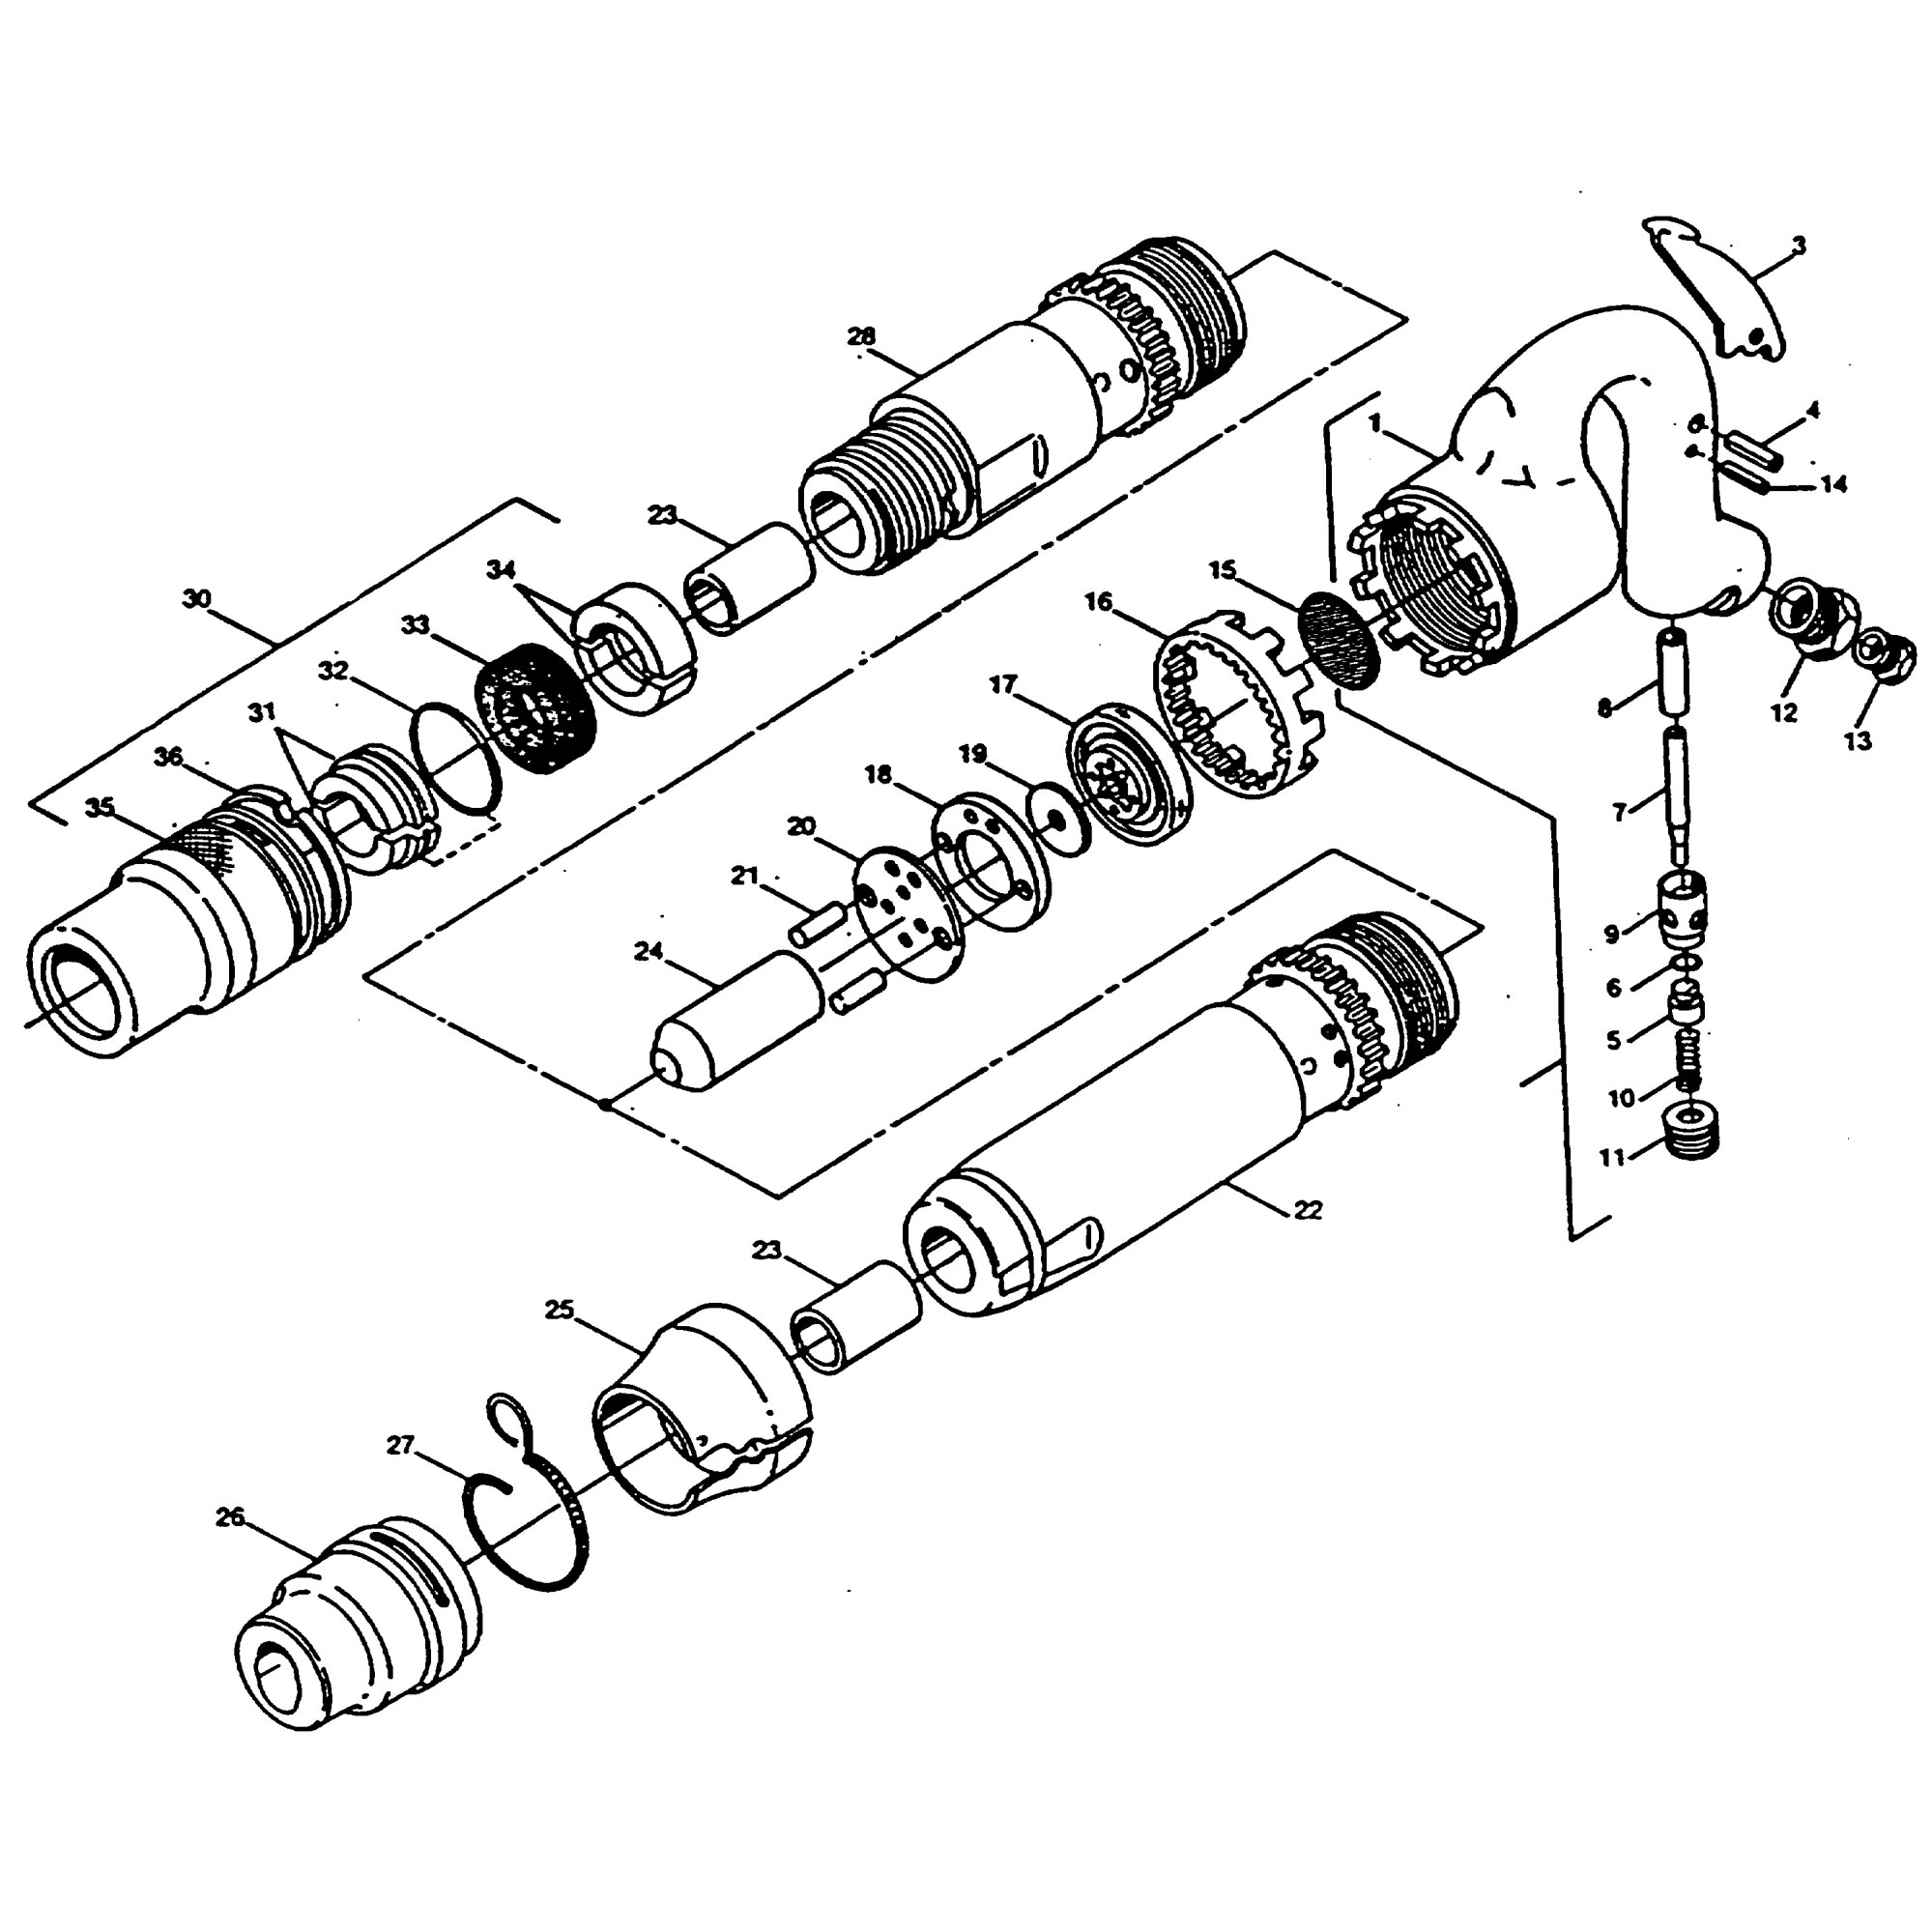 hight resolution of ingersoll rand air tools parts breakdown wiring diagram rx8 engine wiring harness diagram 22re engine wiring